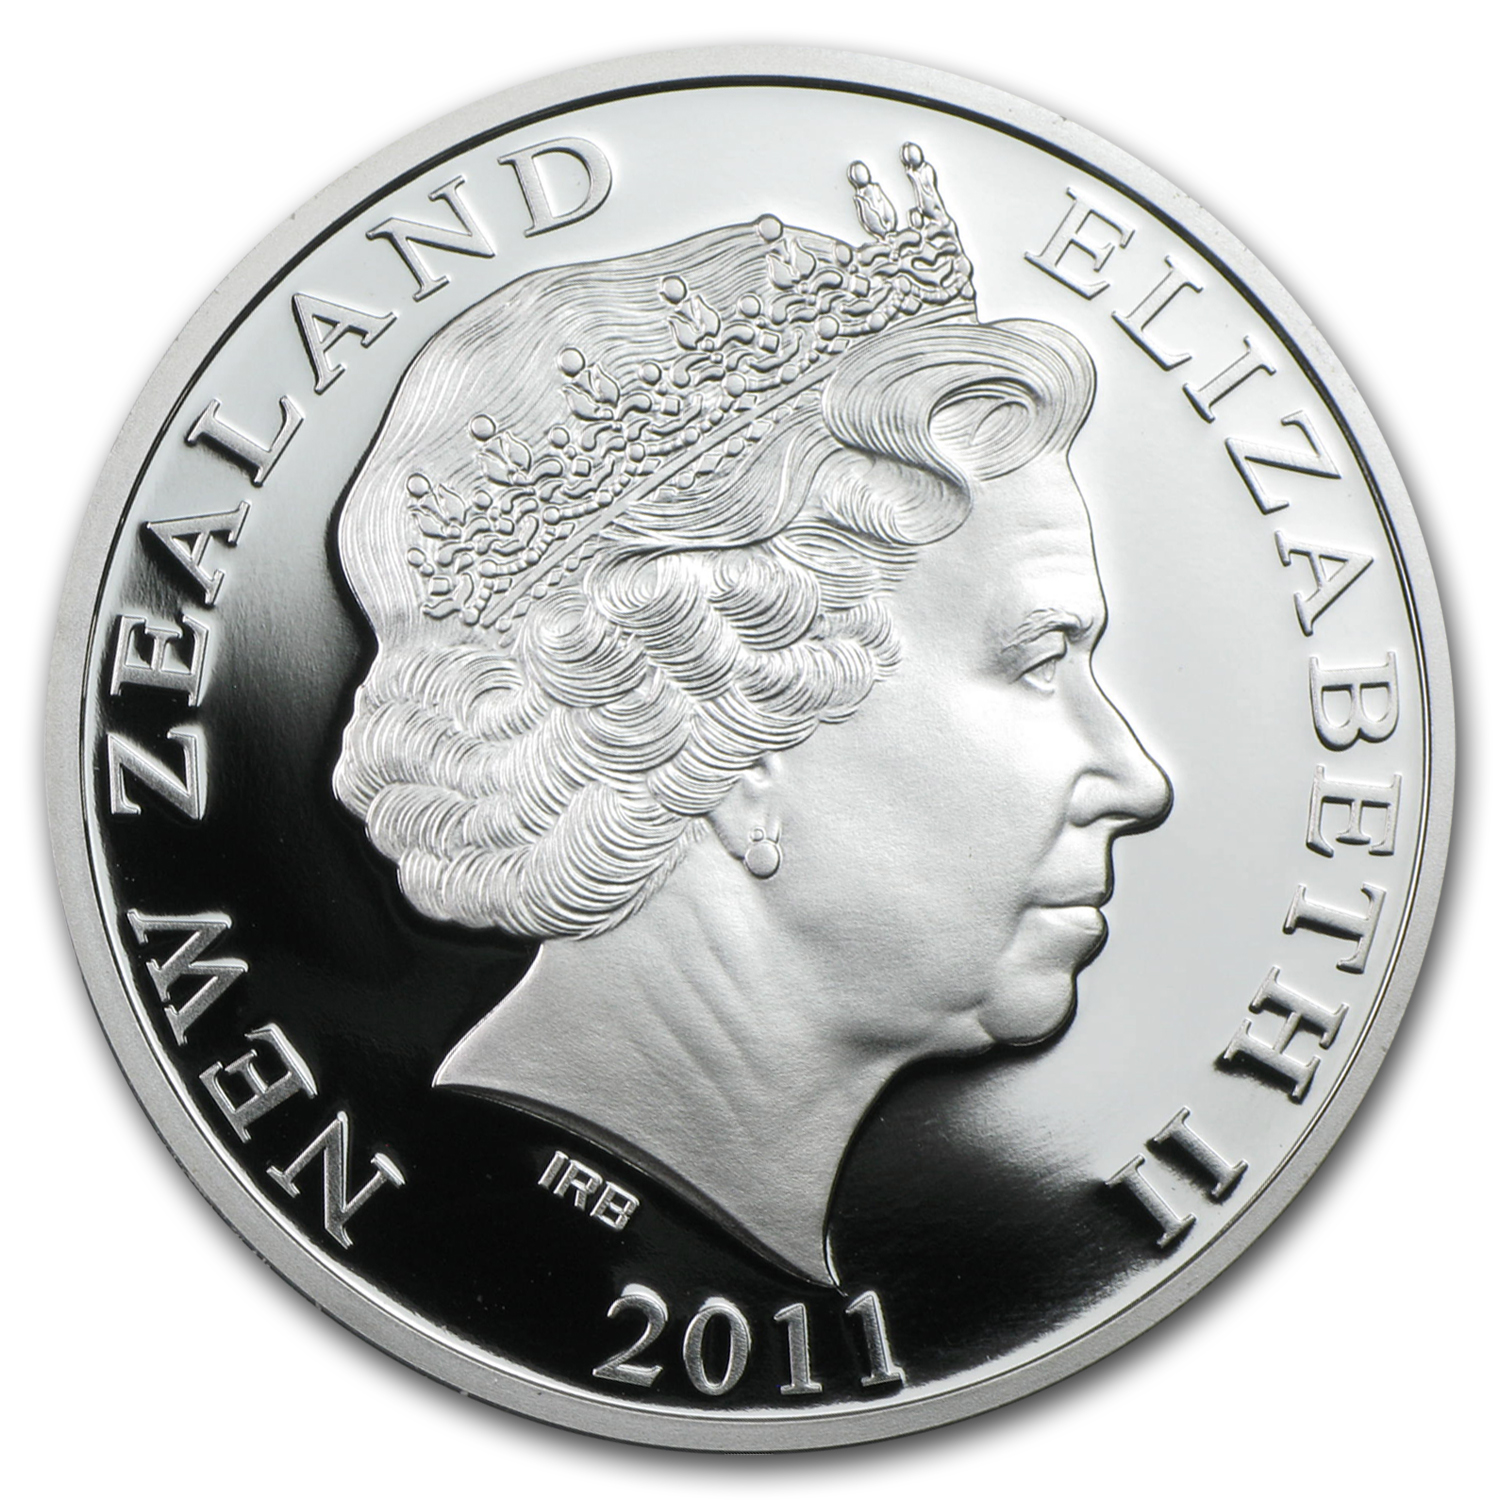 2011 1 oz Silver New Zealand Icons $1 Kiwi Proof